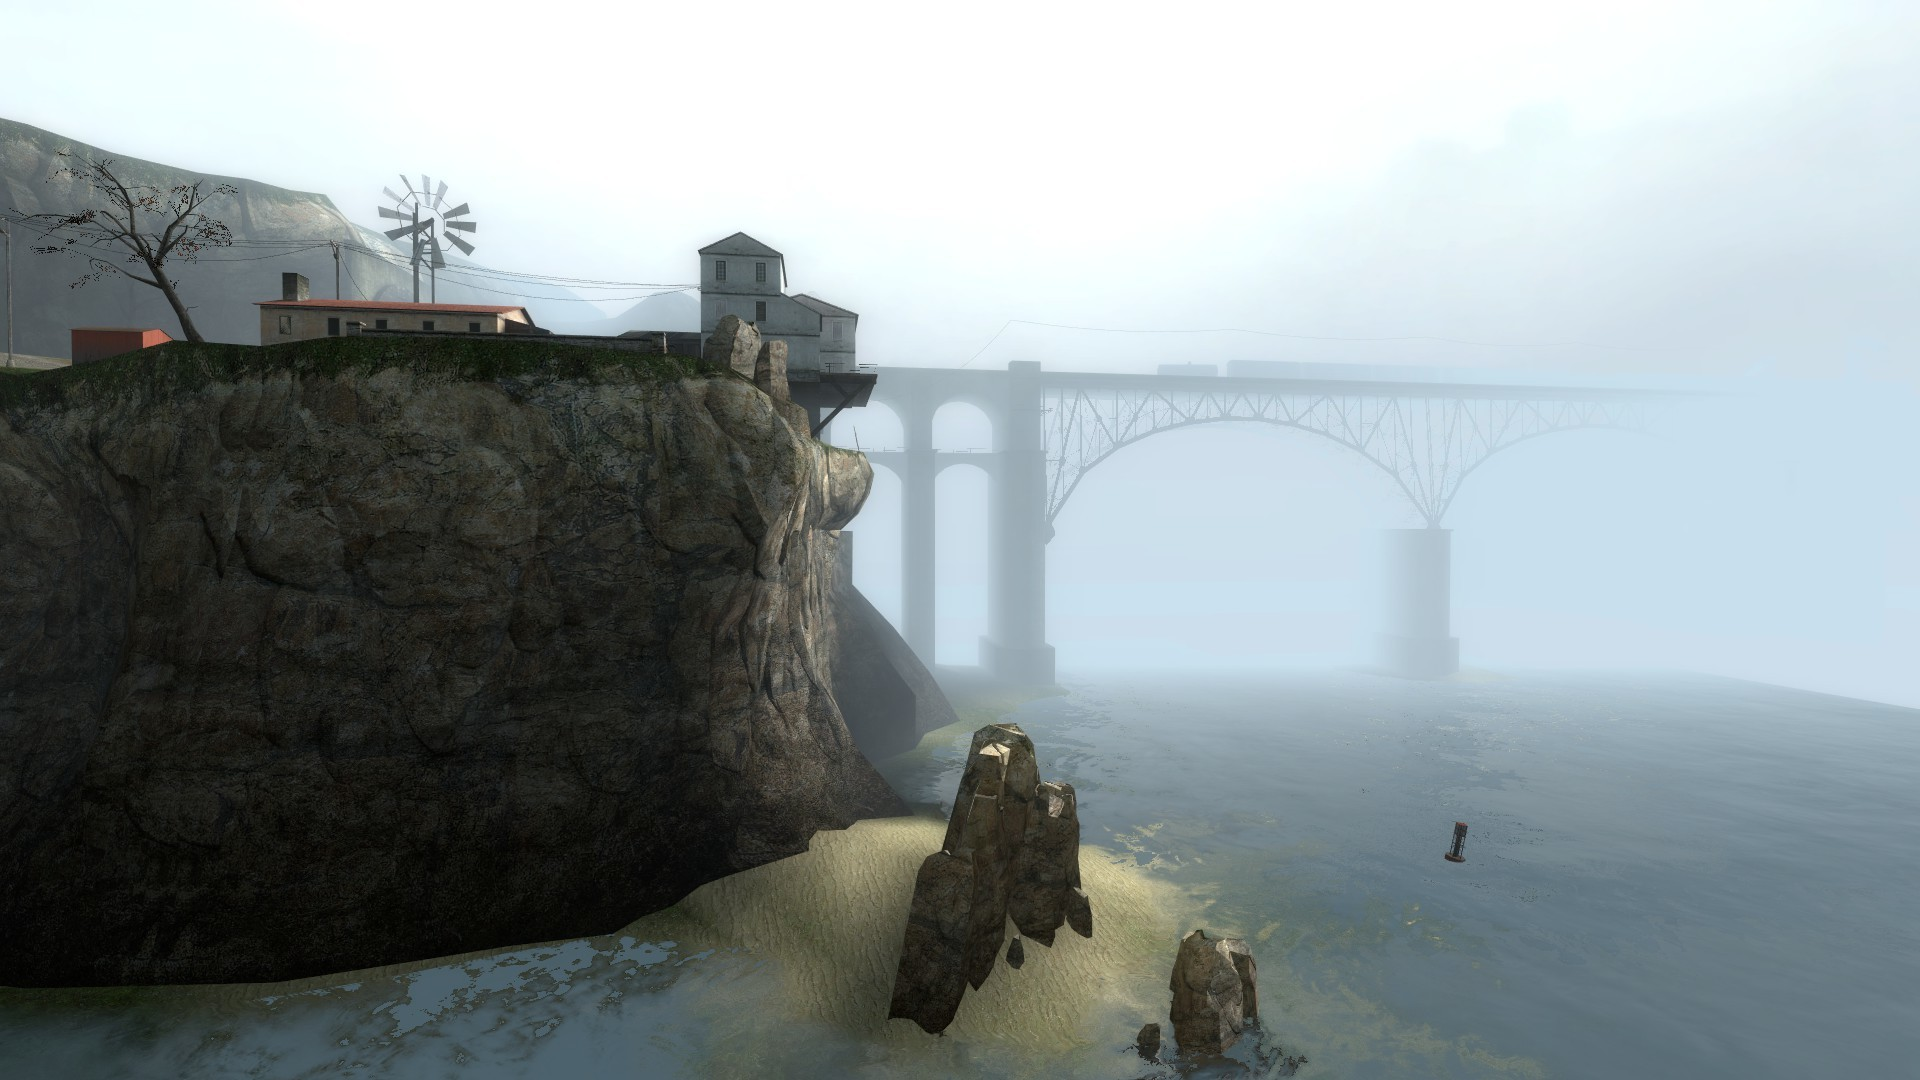 1920x1080 Nice Games Desktop Backgrounds: Half Life 2 HD Widescreen #825781 |.Ssoflx